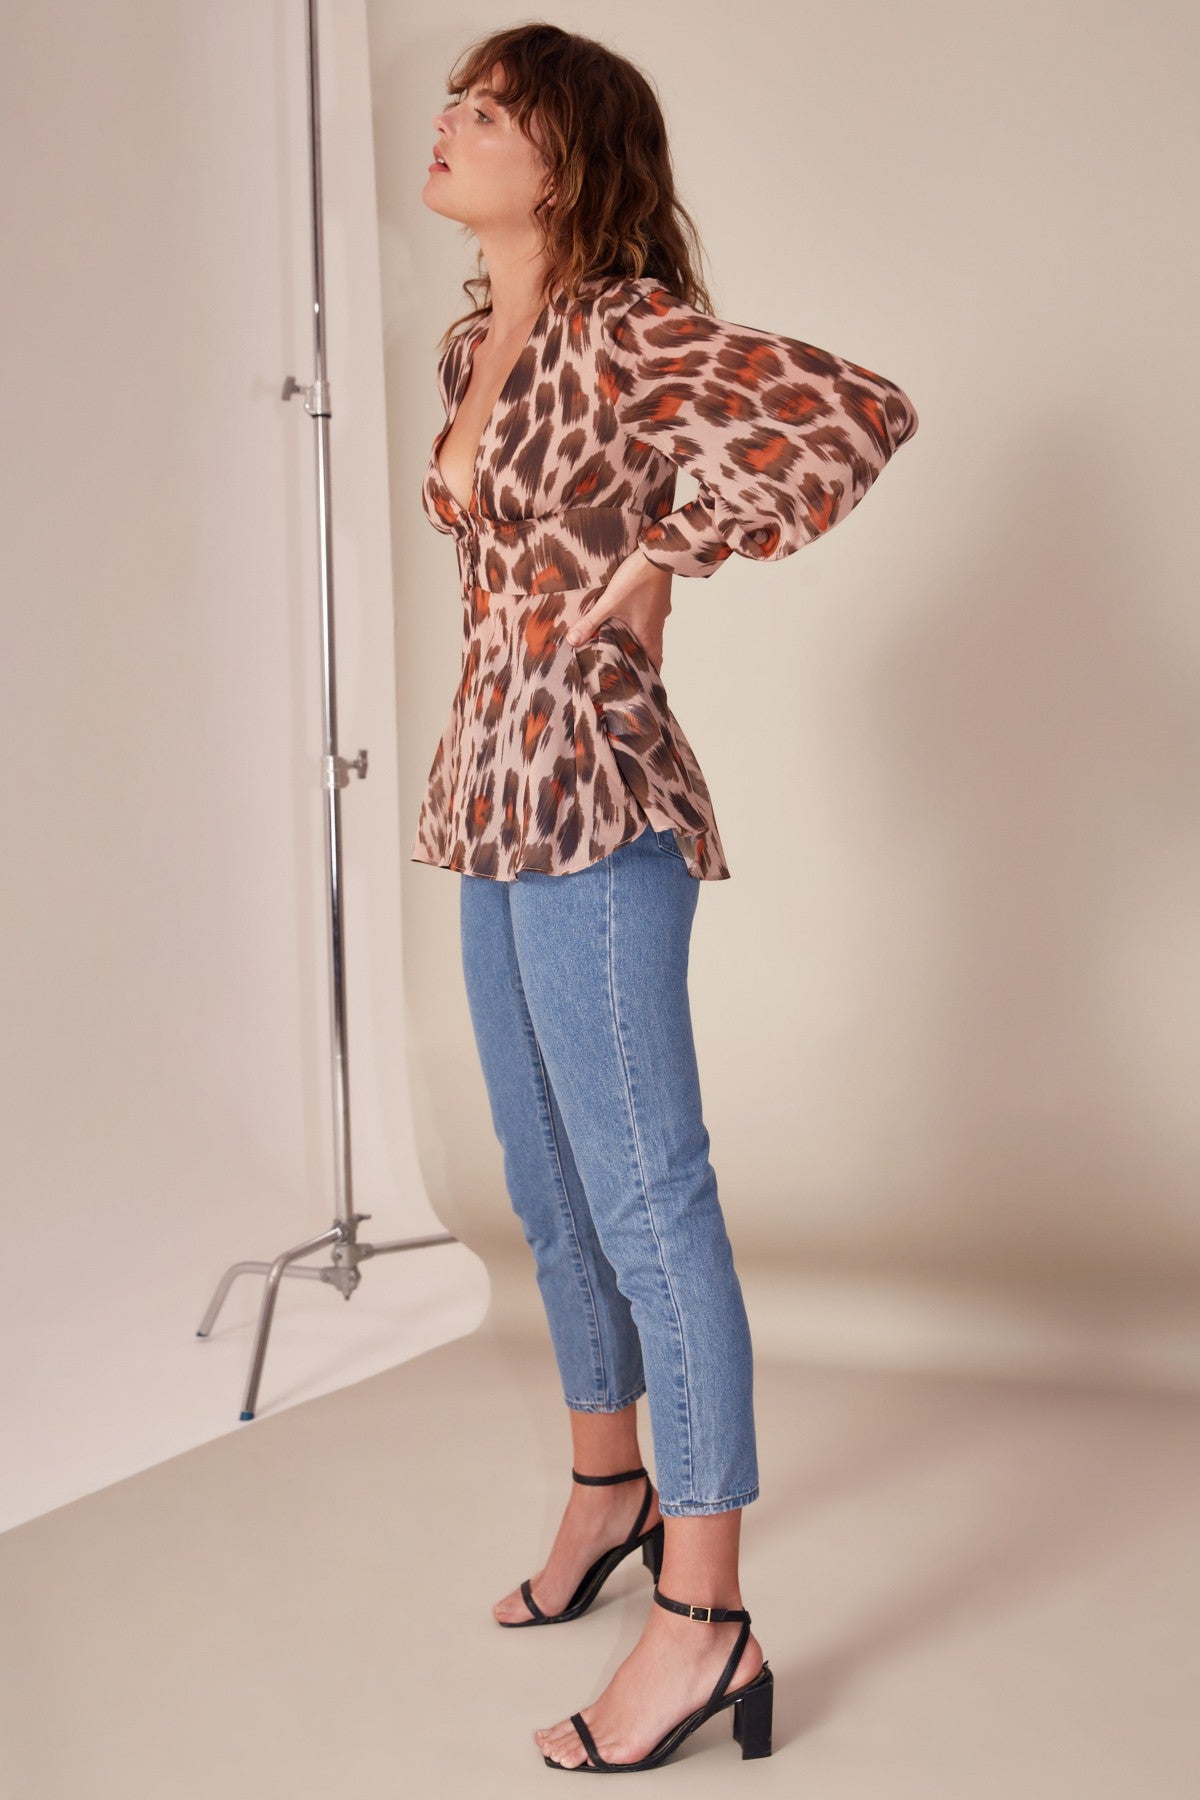 SWEET THING TOP nude leopard